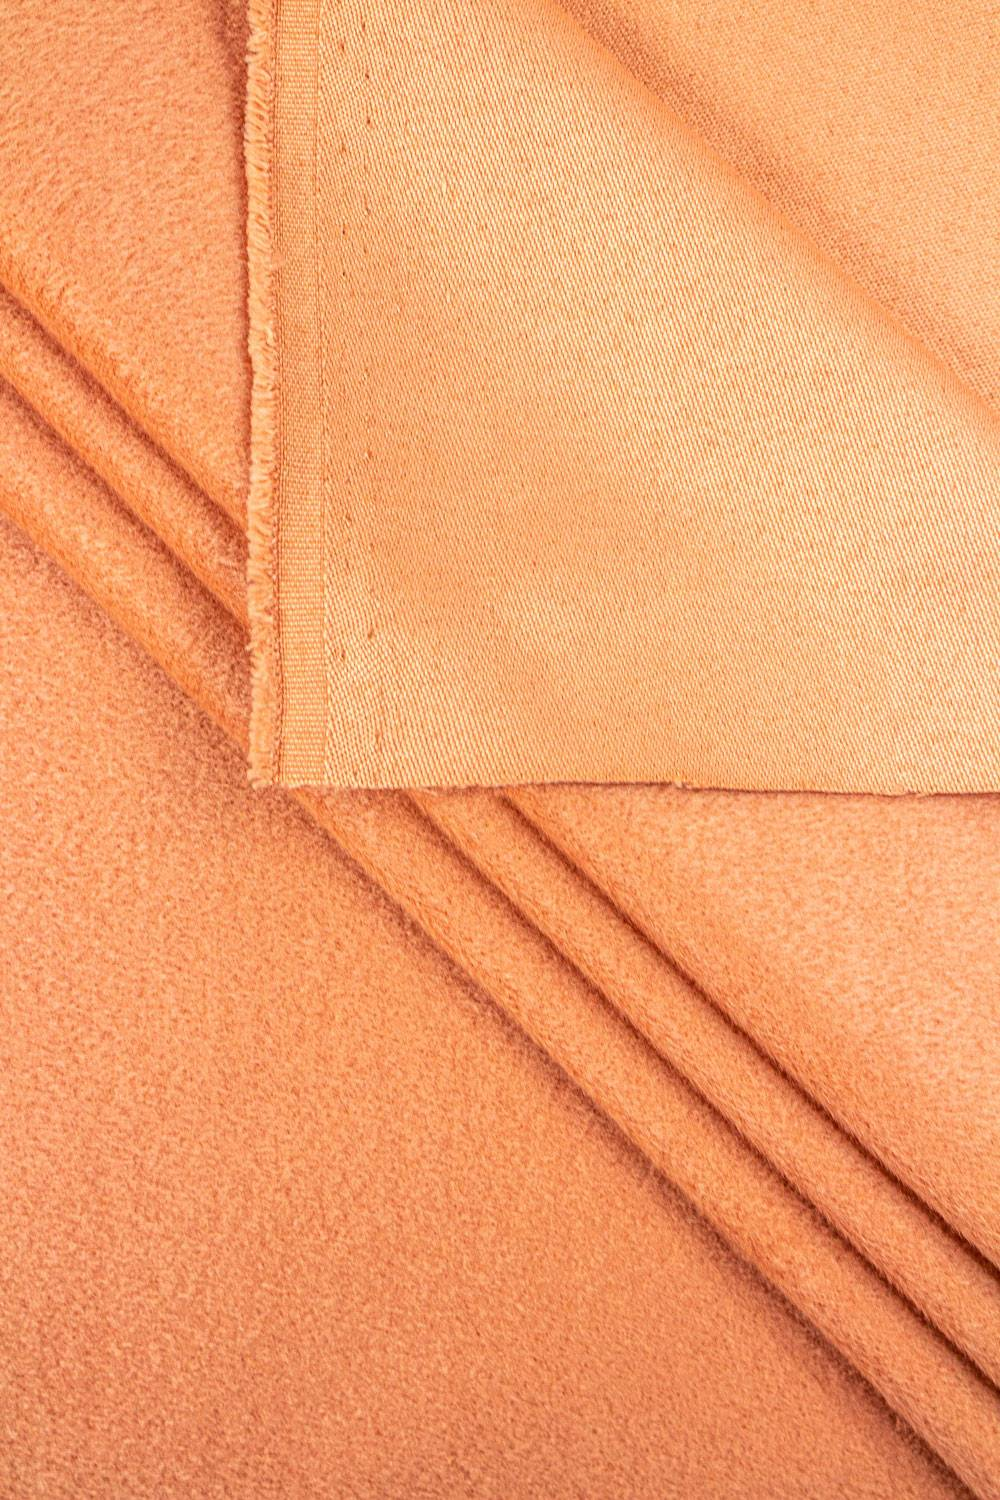 Fabric - Alpaca Fleece - Peach - 150 cm - 450 g/m2